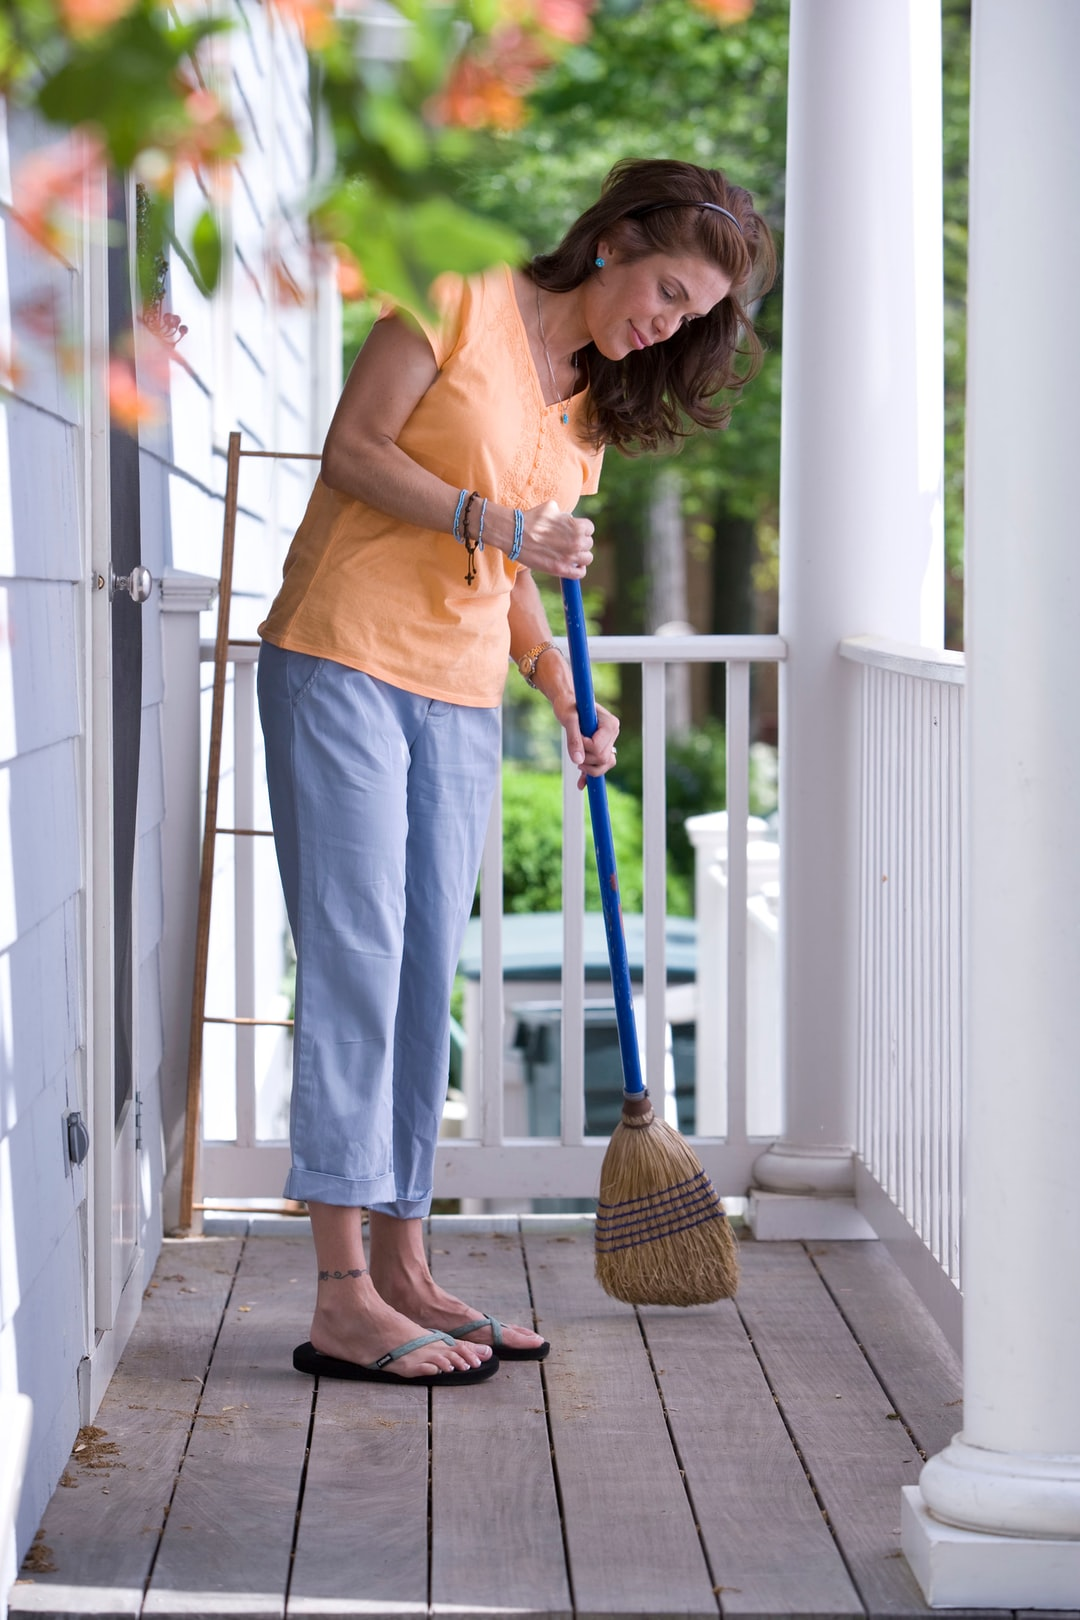 Home maintenance includes both the indoor, and as was the case here, outdoor environment, and is an ongoing process with which a homeowner need to keep up in order to provide for a healthy living space. Keeping your porch dust free reduces the amount of contaminants tracked into the house. This woman was in the process of cleaning her home's porch using a broom. In this way, airborne particulates, including dust and pollen, could be removed from this area of her home, reducing the detrimental effects upon her family's respiratory systems.